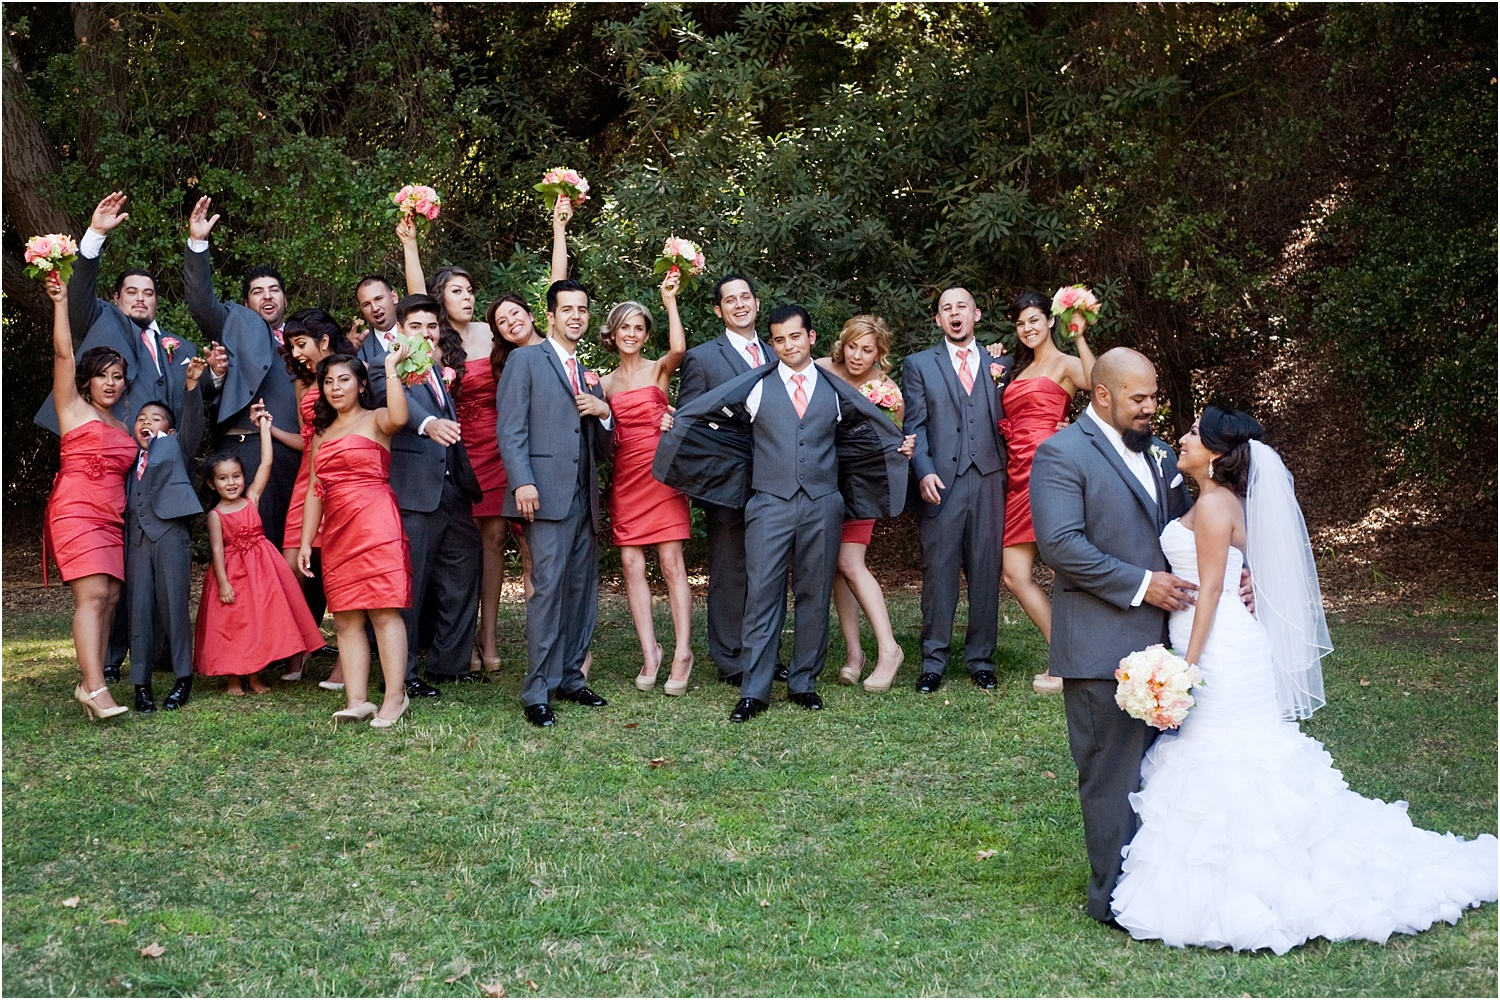 How to photograph family and bridal party portraits quickly at weddings 21